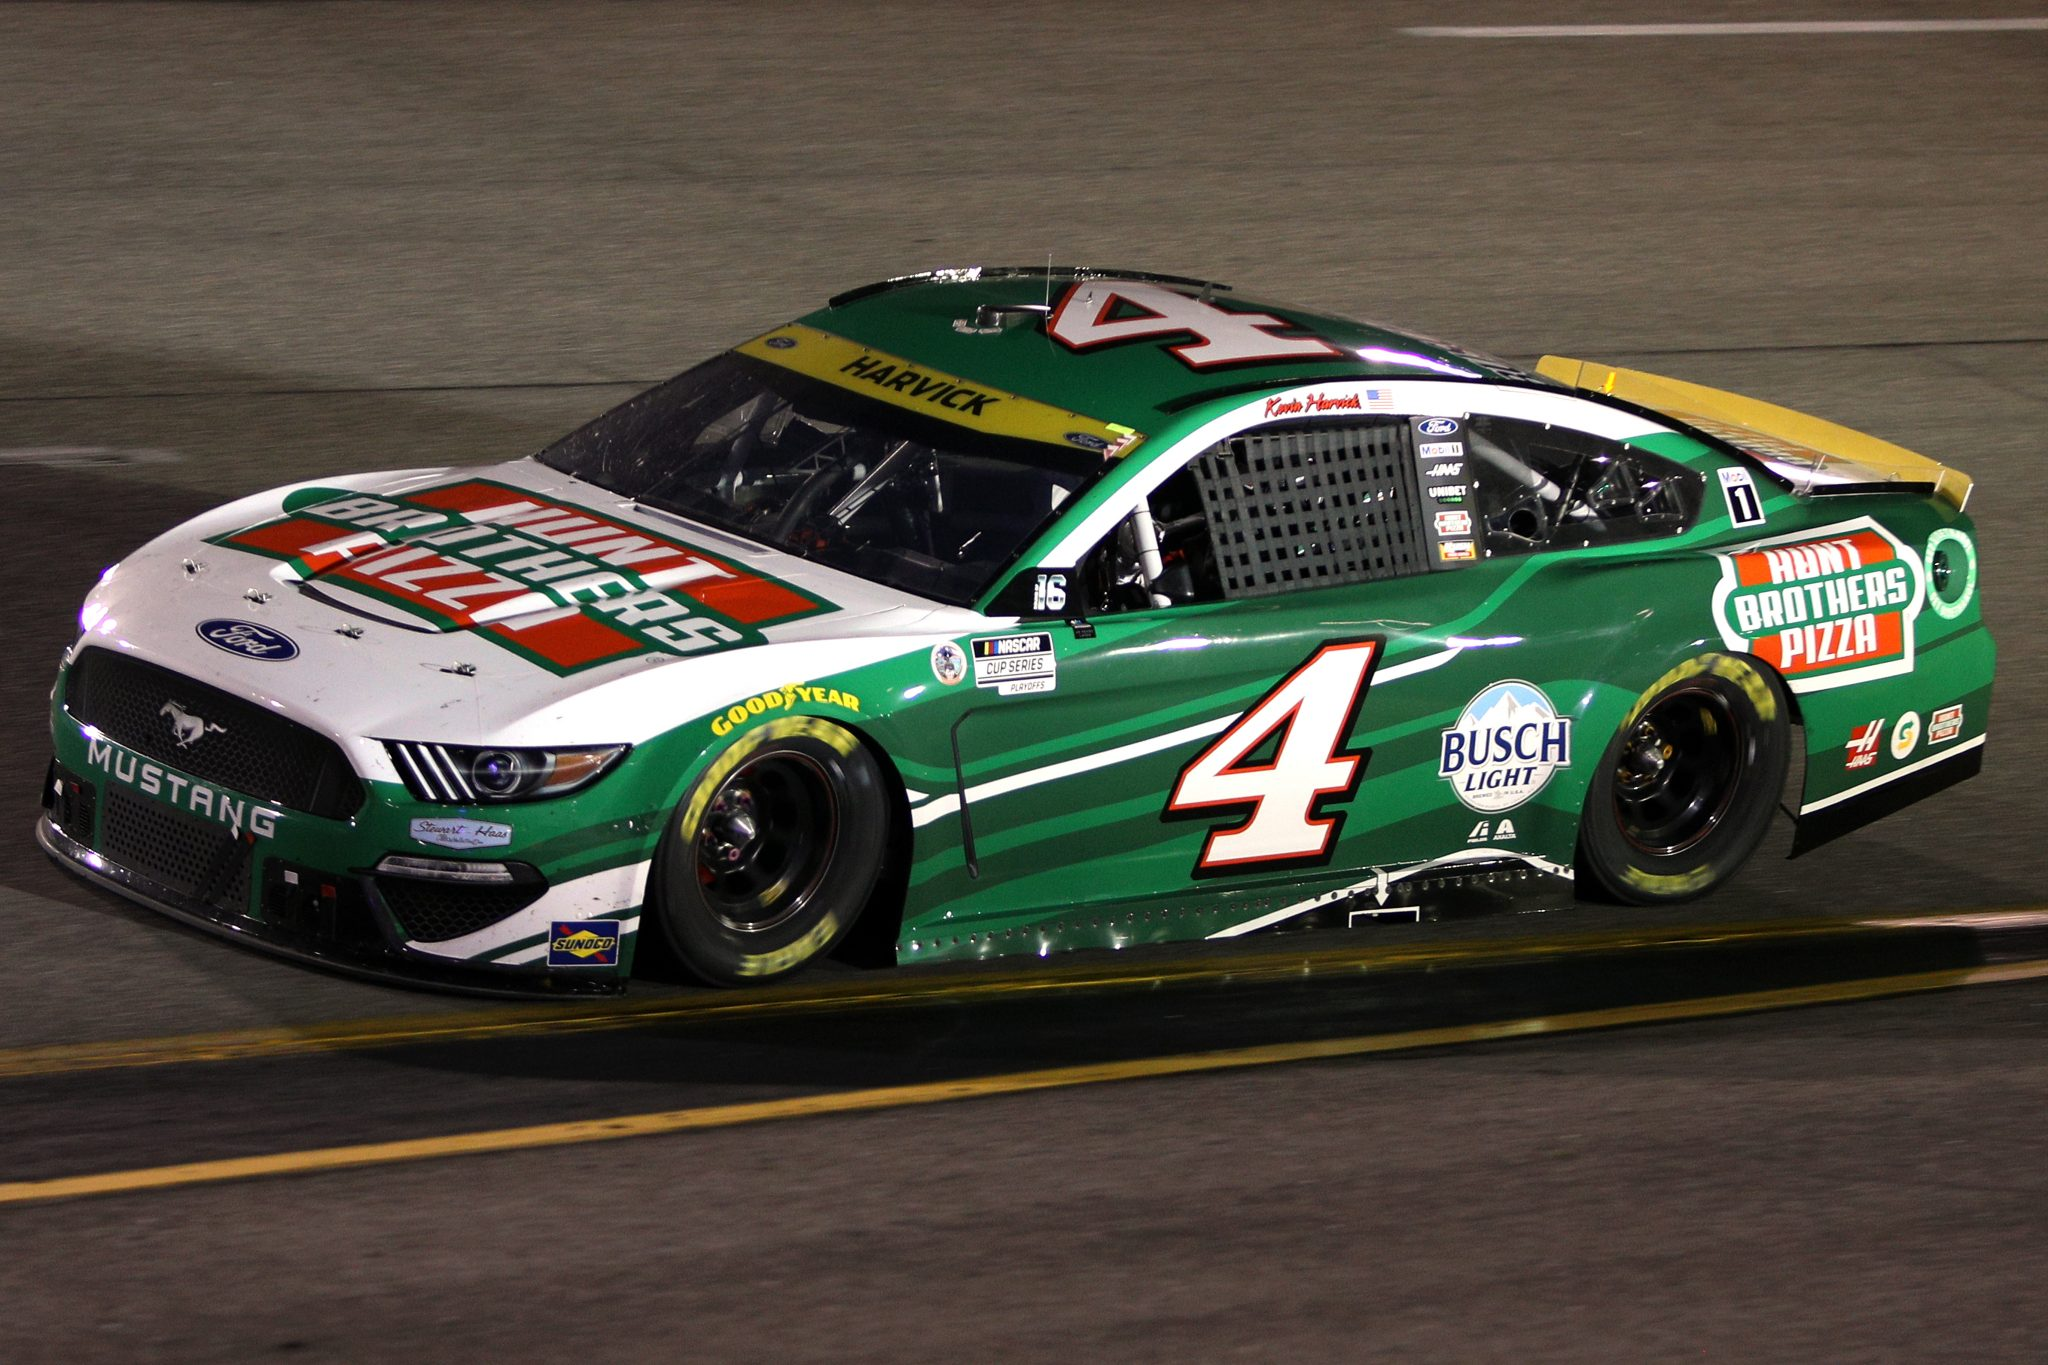 RICHMOND, VIRGINIA - SEPTEMBER 11: Kevin Harvick, driver of the #4 Hunt Brothers Pizza Ford, drives during the NASCAR Cup Series Federated Auto Parts 400 Salute to First Responders at Richmond Raceway on September 11, 2021 in Richmond, Virginia. (Photo by Sean Gardner/Getty Images)   Getty Images